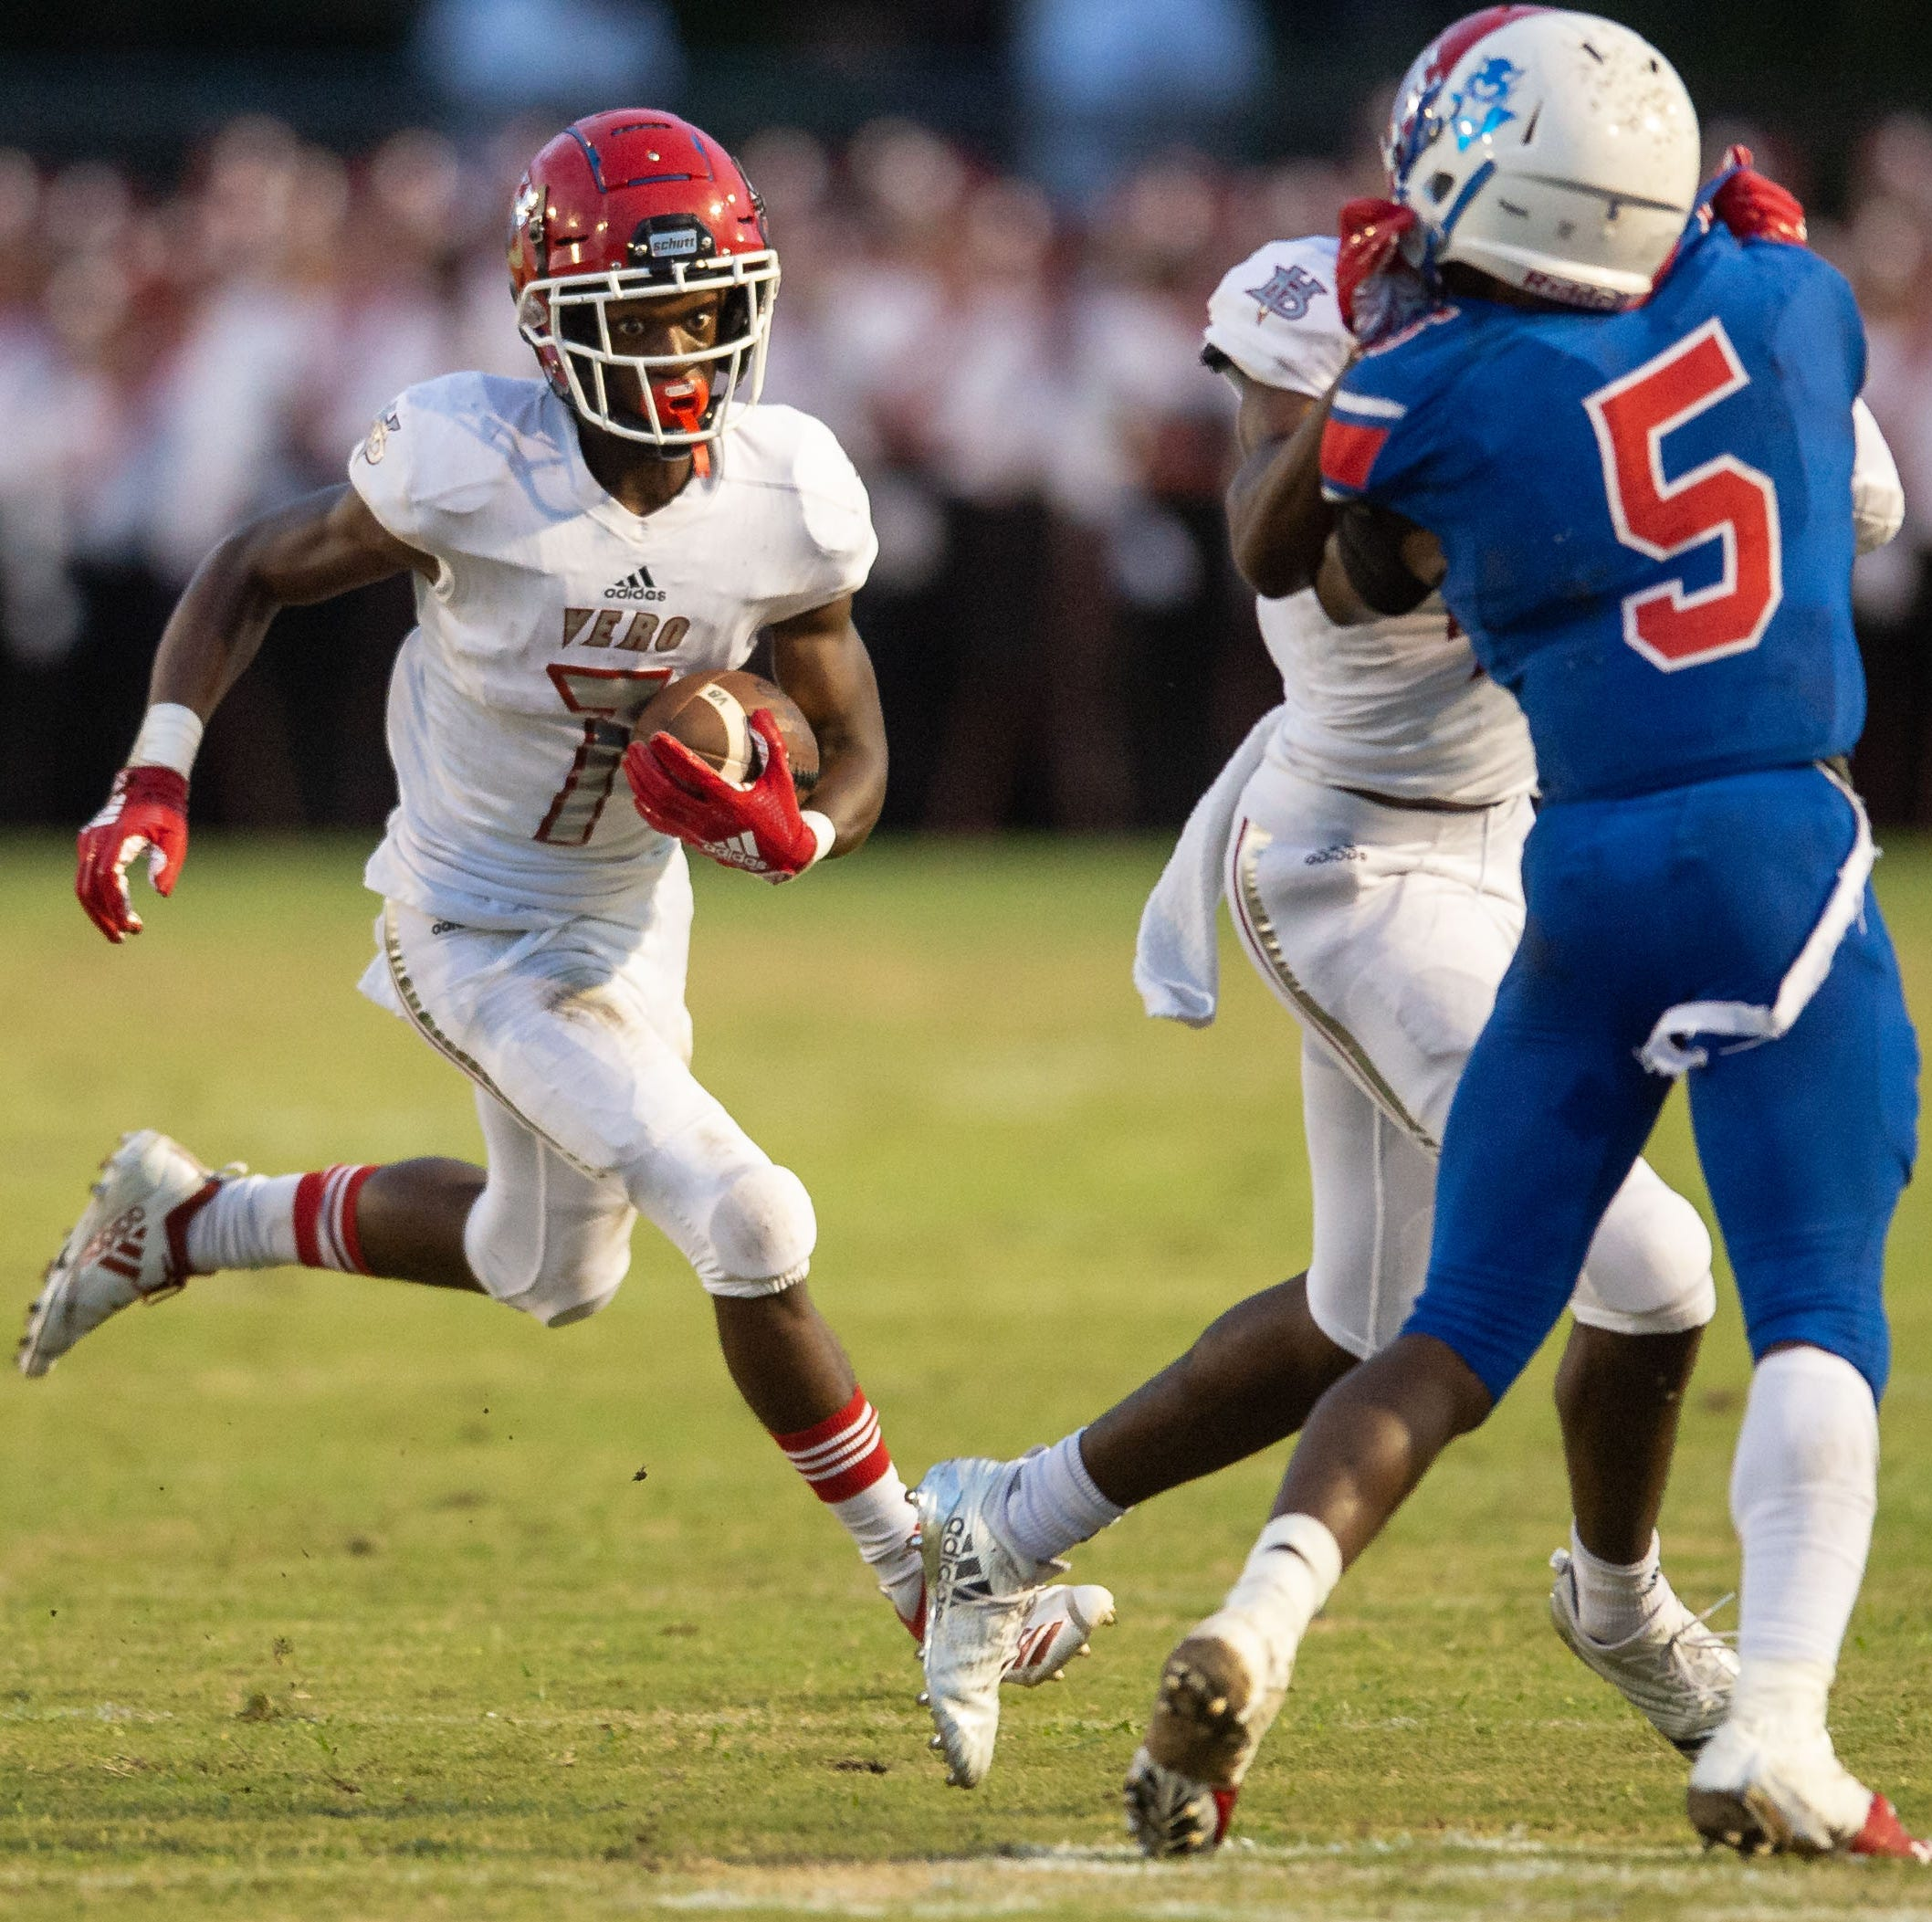 8-8A rivals Vero Beach, Centennial, Treasure Coast on track for top-4 seeds in playoffs